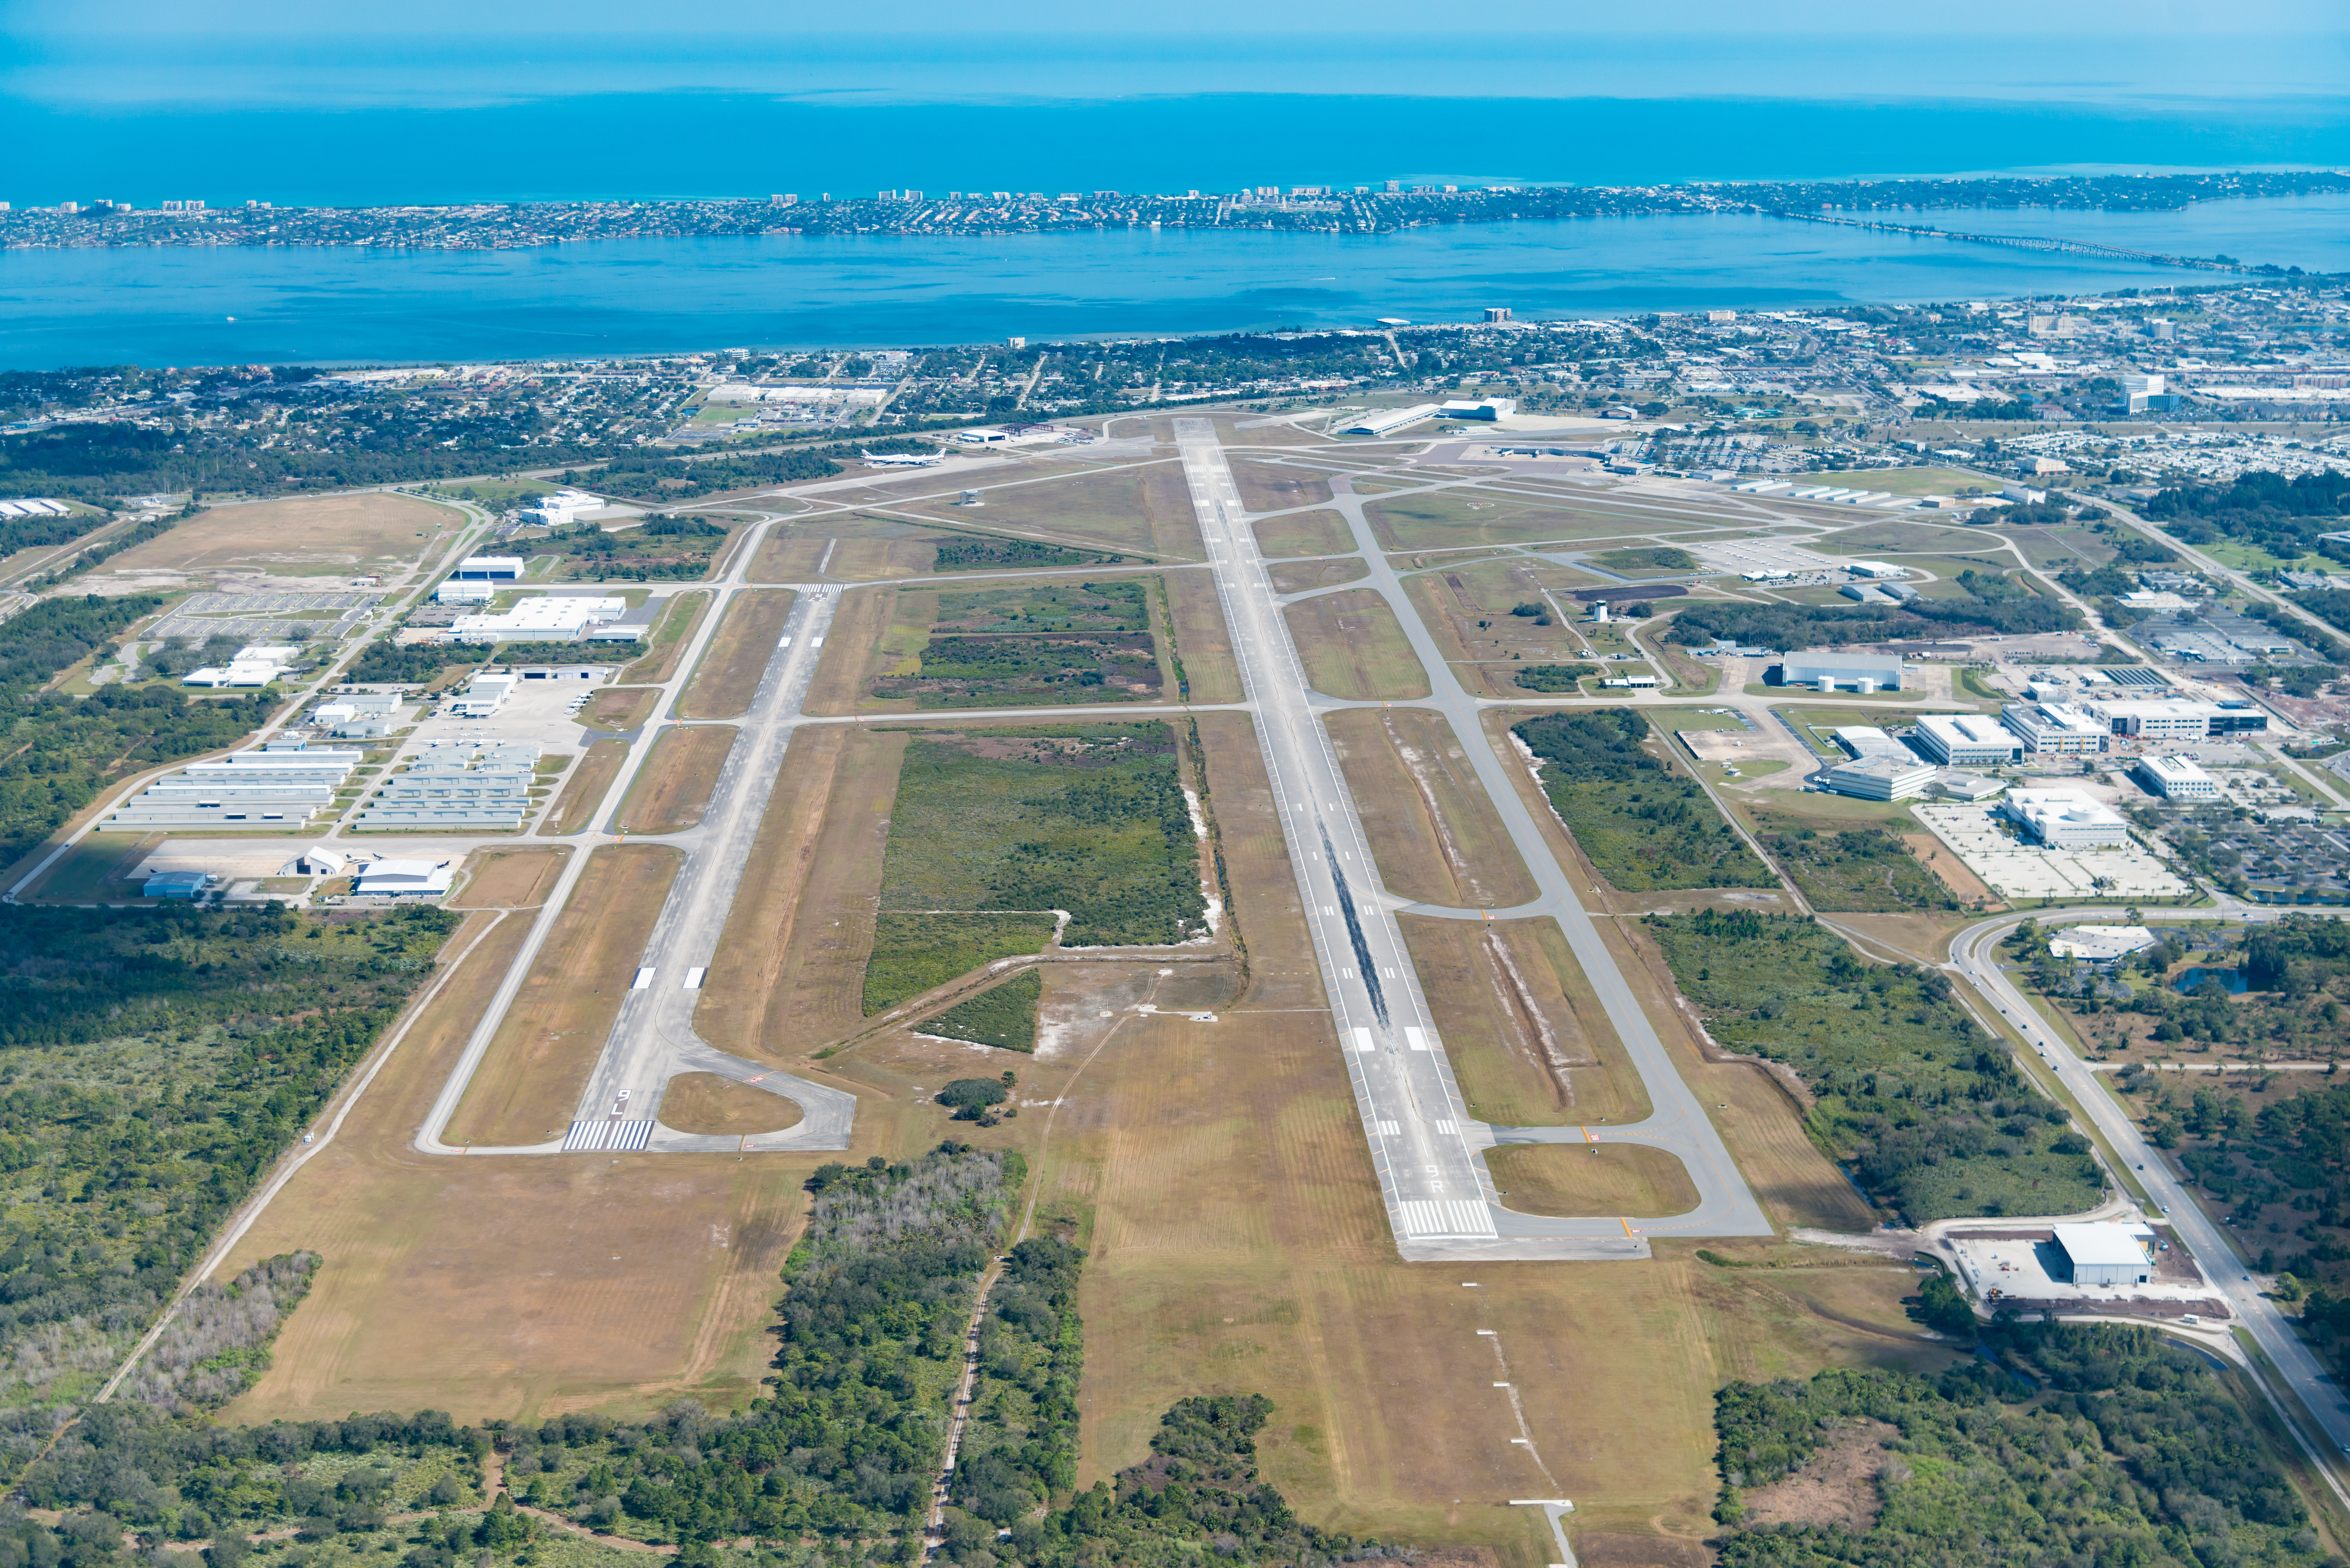 Considered one of most beautiful airport approaches in the U.S., Orlando Melbourne International Airport (MLB) is seeing an increase in passengers and international service. (Photo: Business Wire)